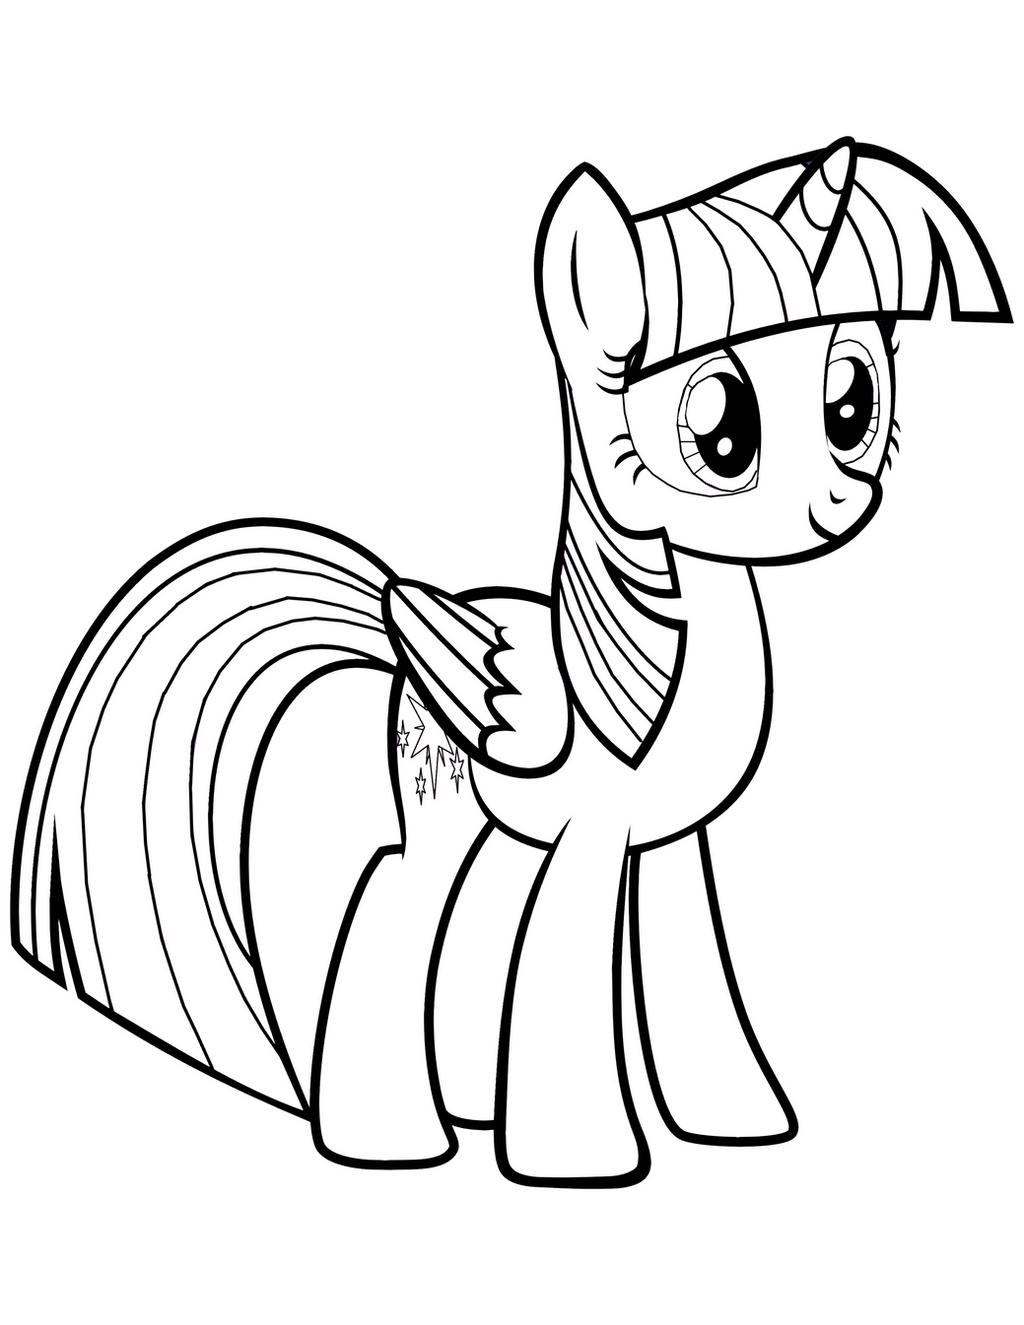 Twilight sparkle alicorn coloring page by mrowymowy on for Twilight sparkle coloring page